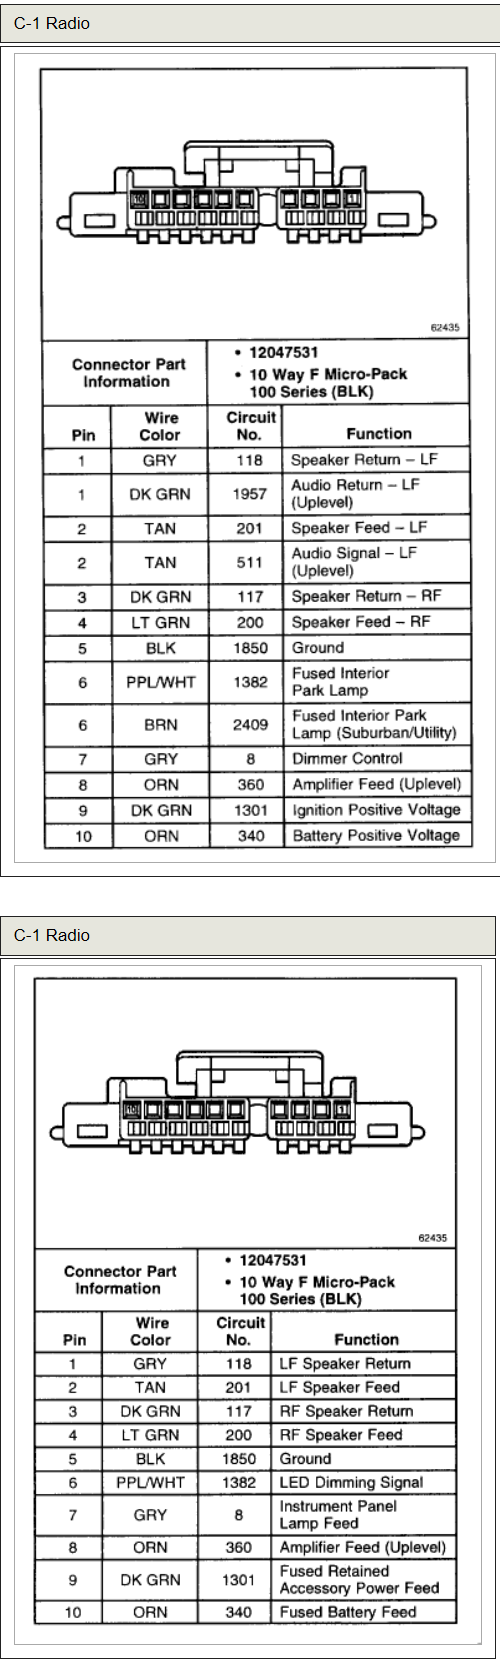 Chevrolet Car Radio Stereo Audio Wiring Diagram Autoradio Connector Amplifiers For Two Wire Installation Schematic Schema Esquema De Conexiones Anschlusskammern Konektor